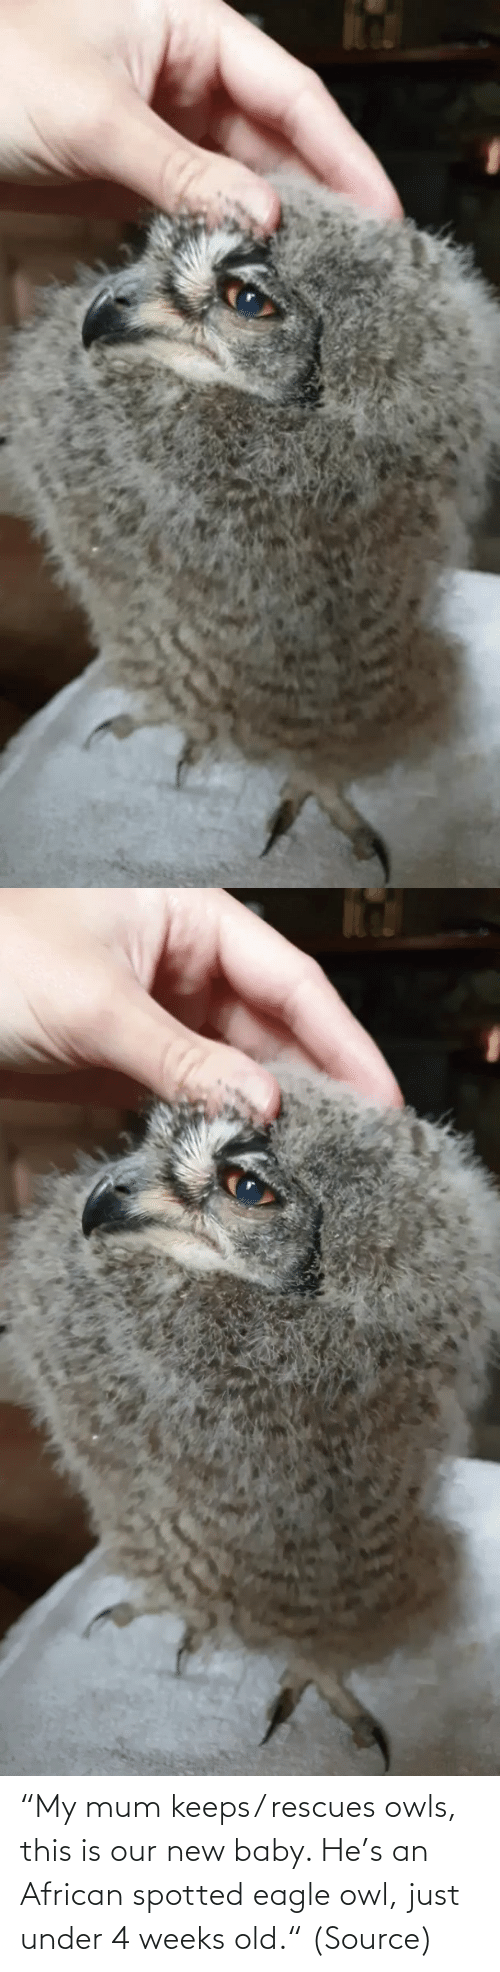 "Baby: ""My mum keeps/ rescues owls, this is our new baby. He's an African spotted eagle owl, just under 4 weeks old."" (Source)"